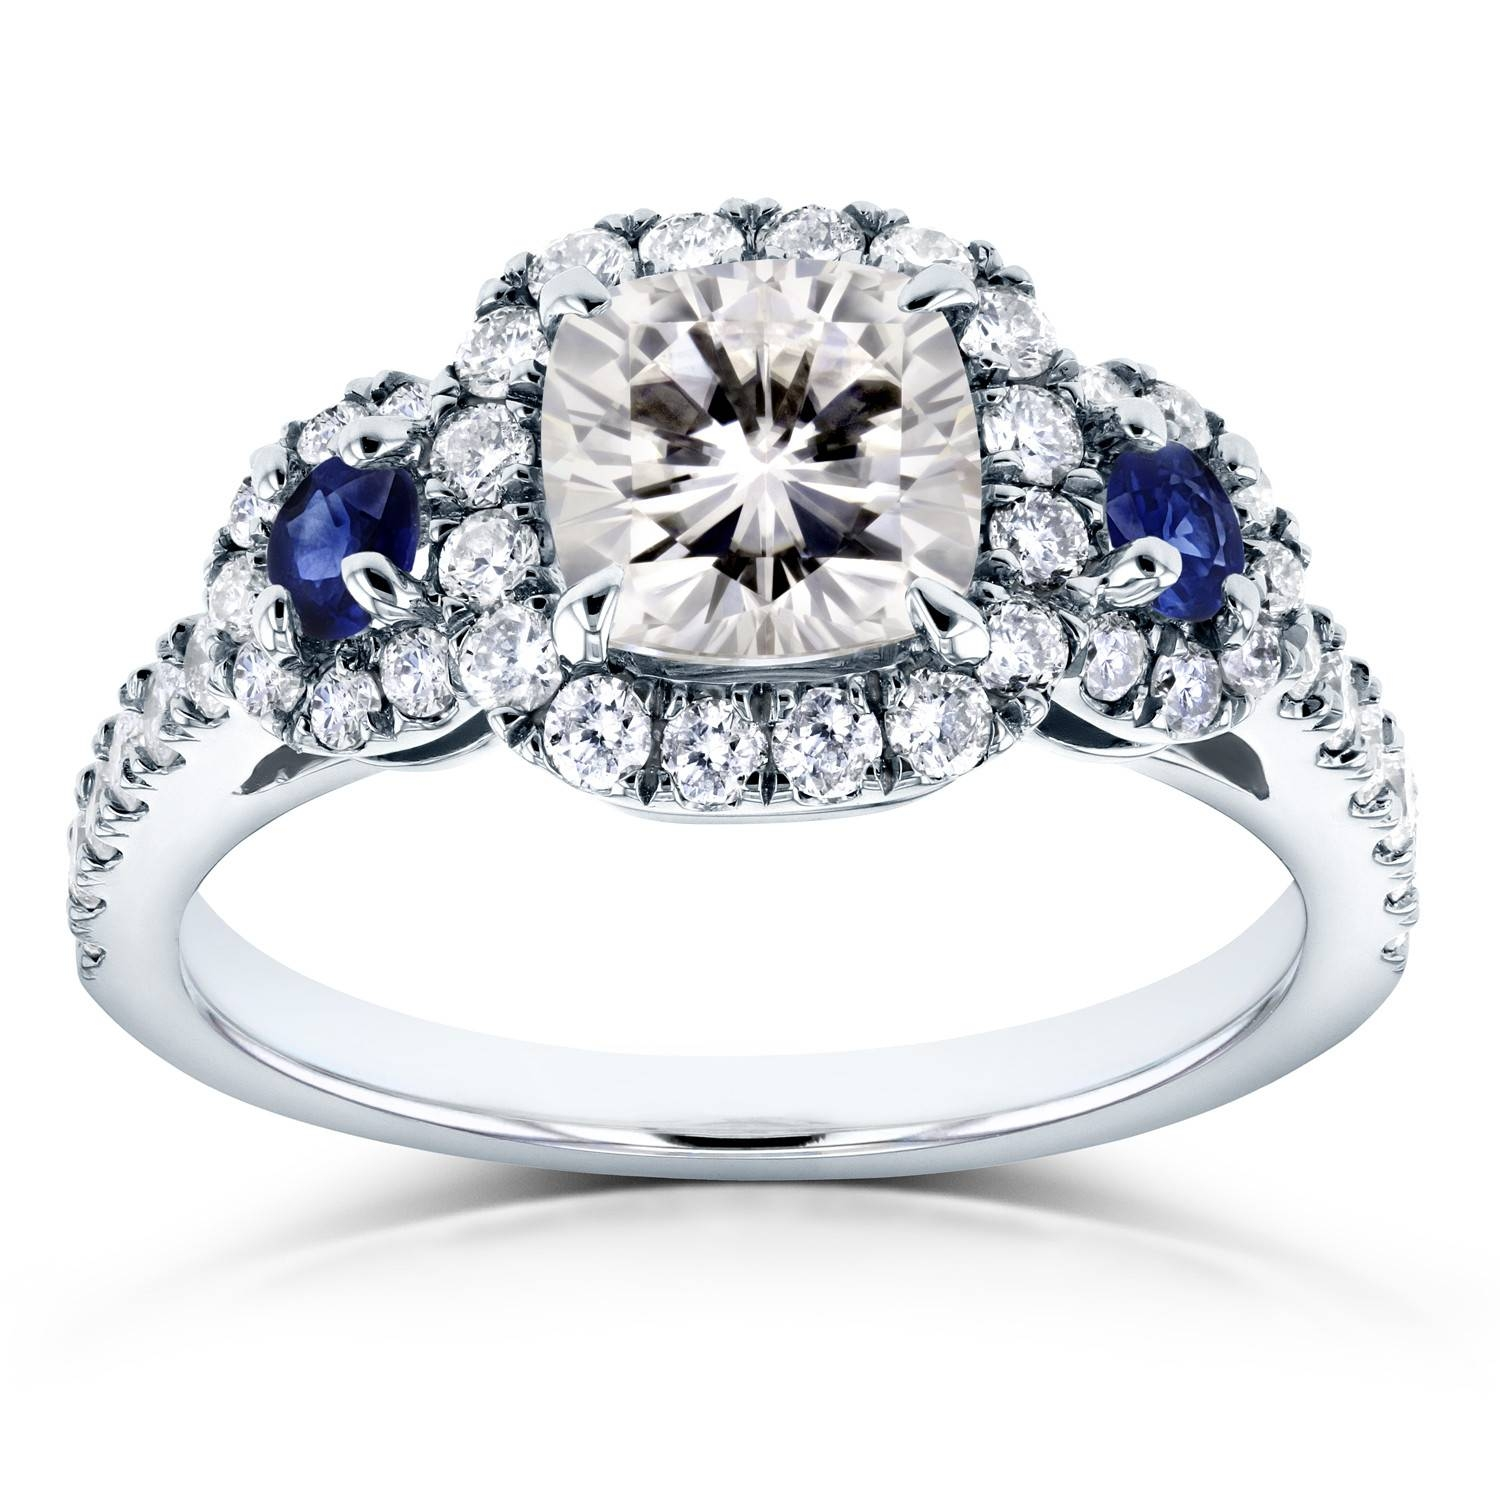 Moissanite (Hi) Sapphire And Diamond Engagement Ring 1 7/8 Ctw 14K Regarding 7 Diamond Engagement Rings (Gallery 10 of 15)